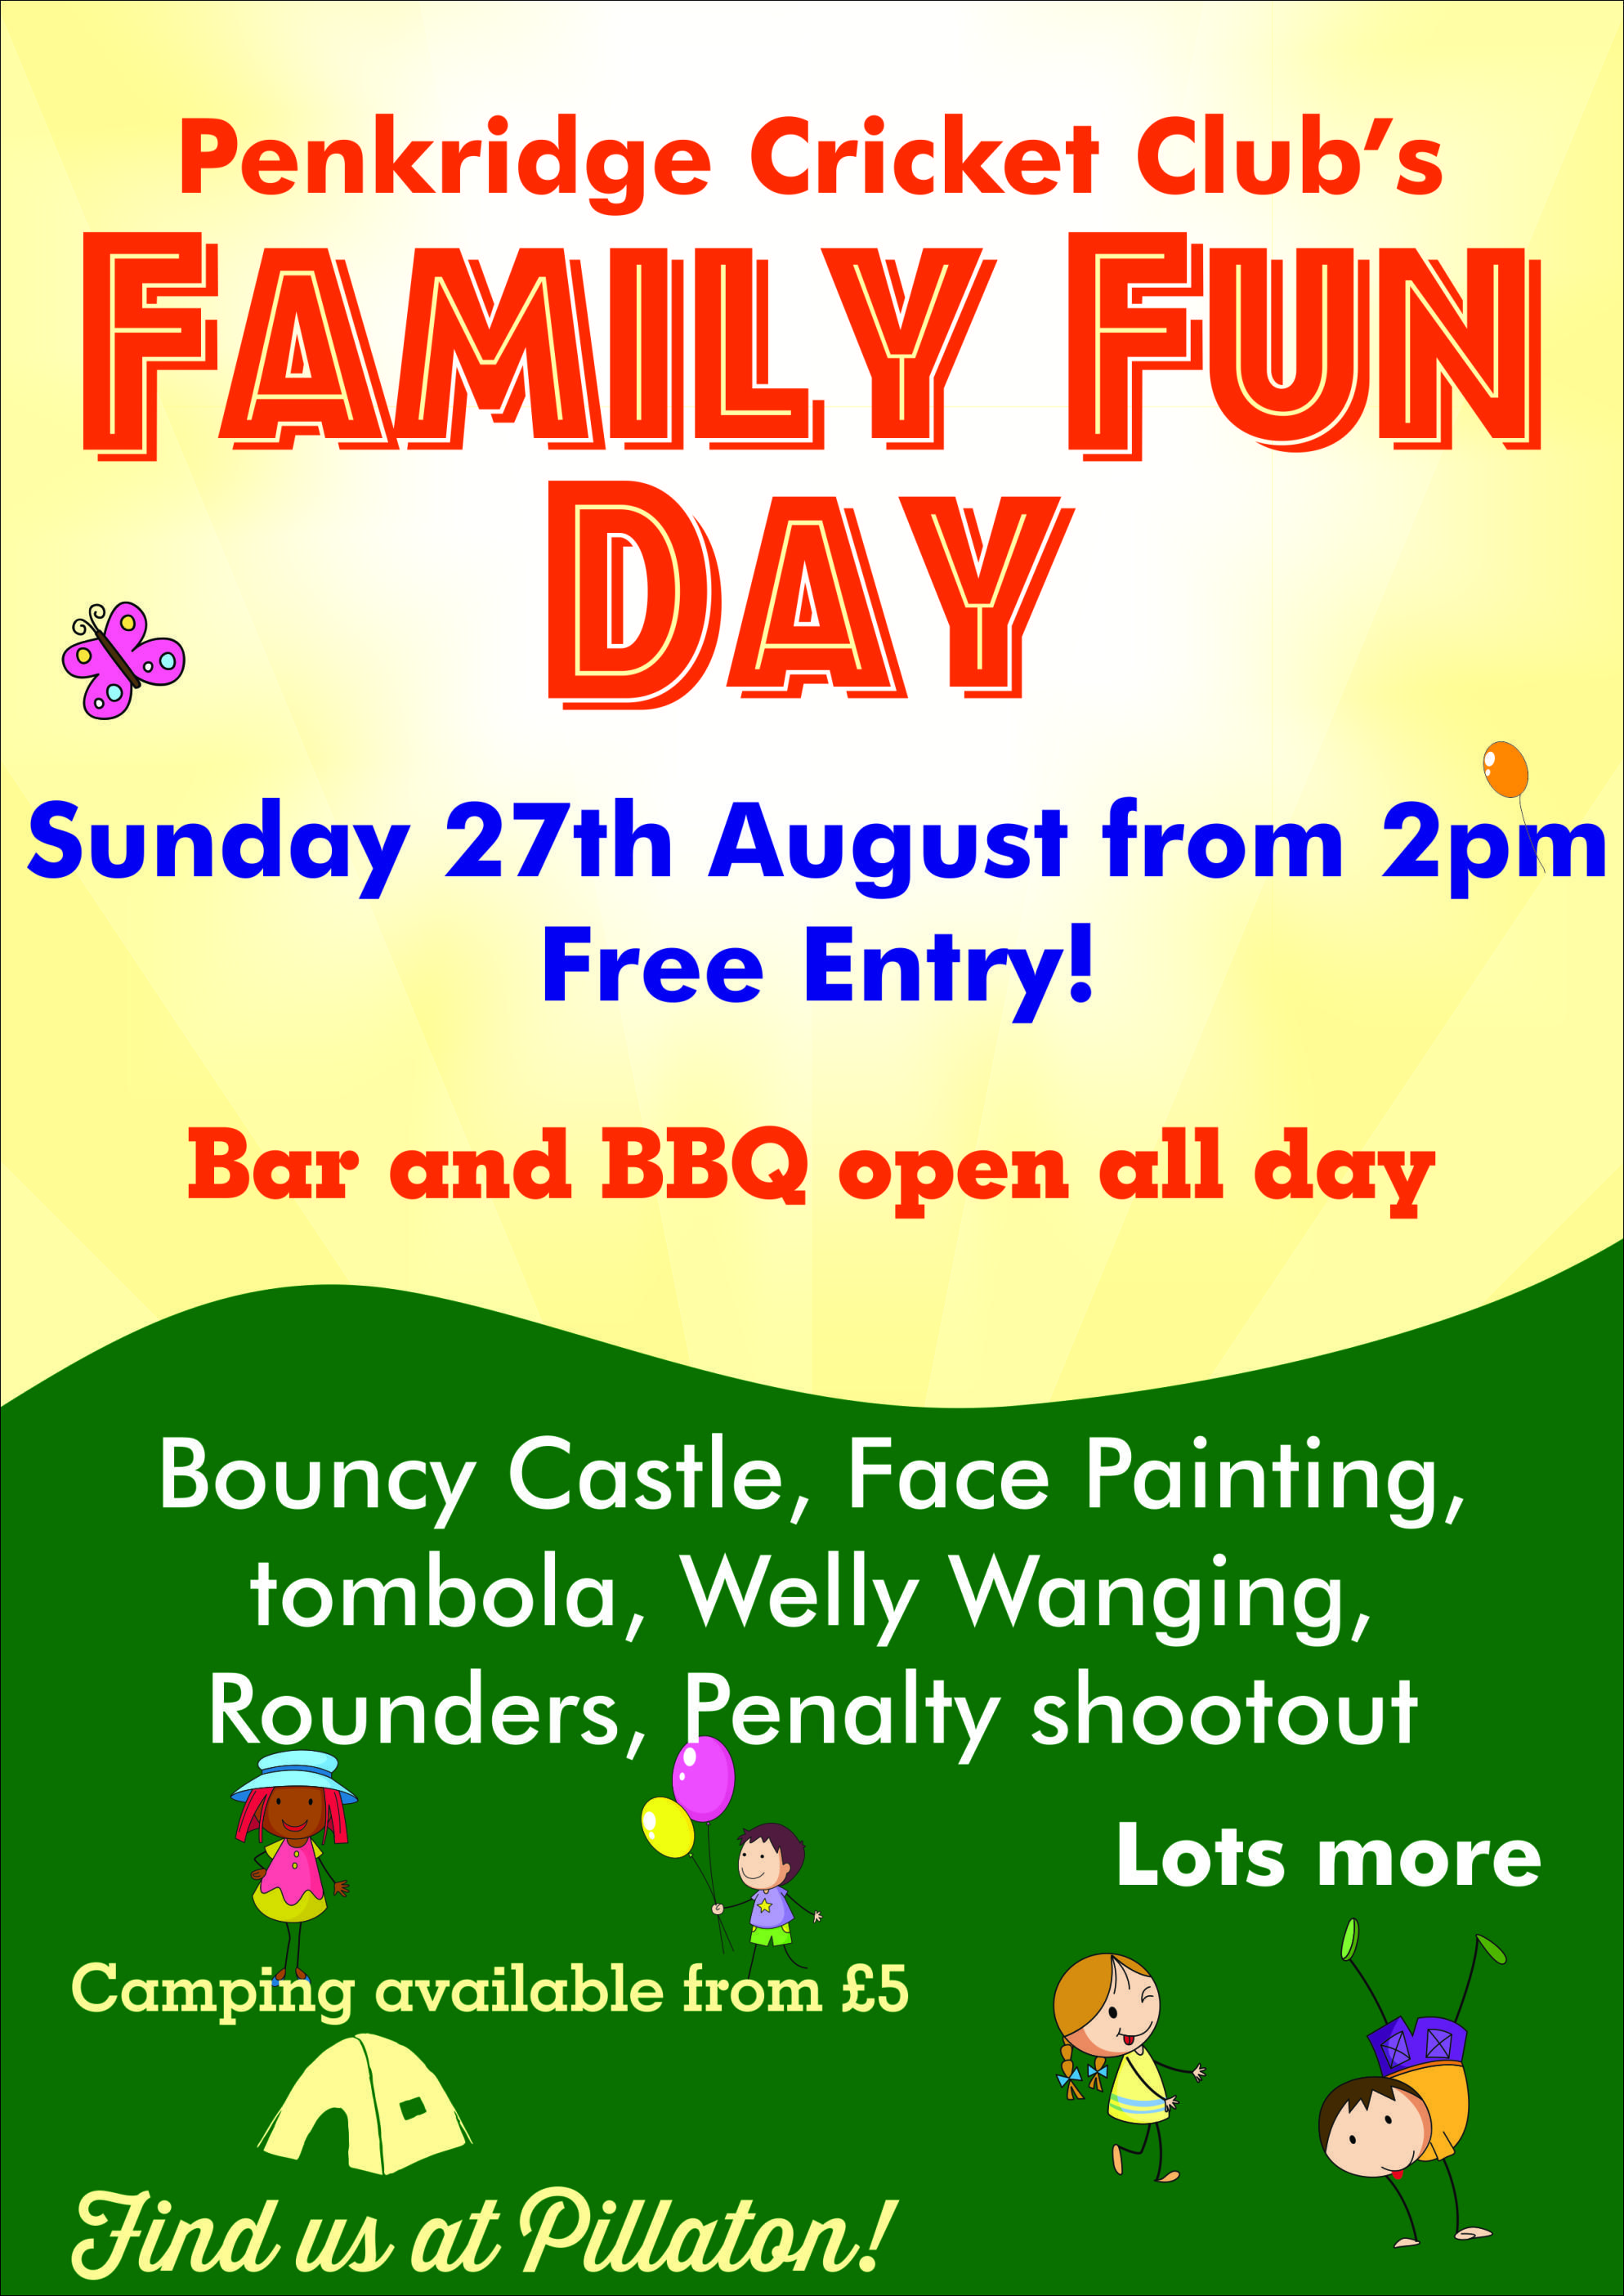 Family Fun Day Poster Penkridge Family Fun Day Family Fun Fun